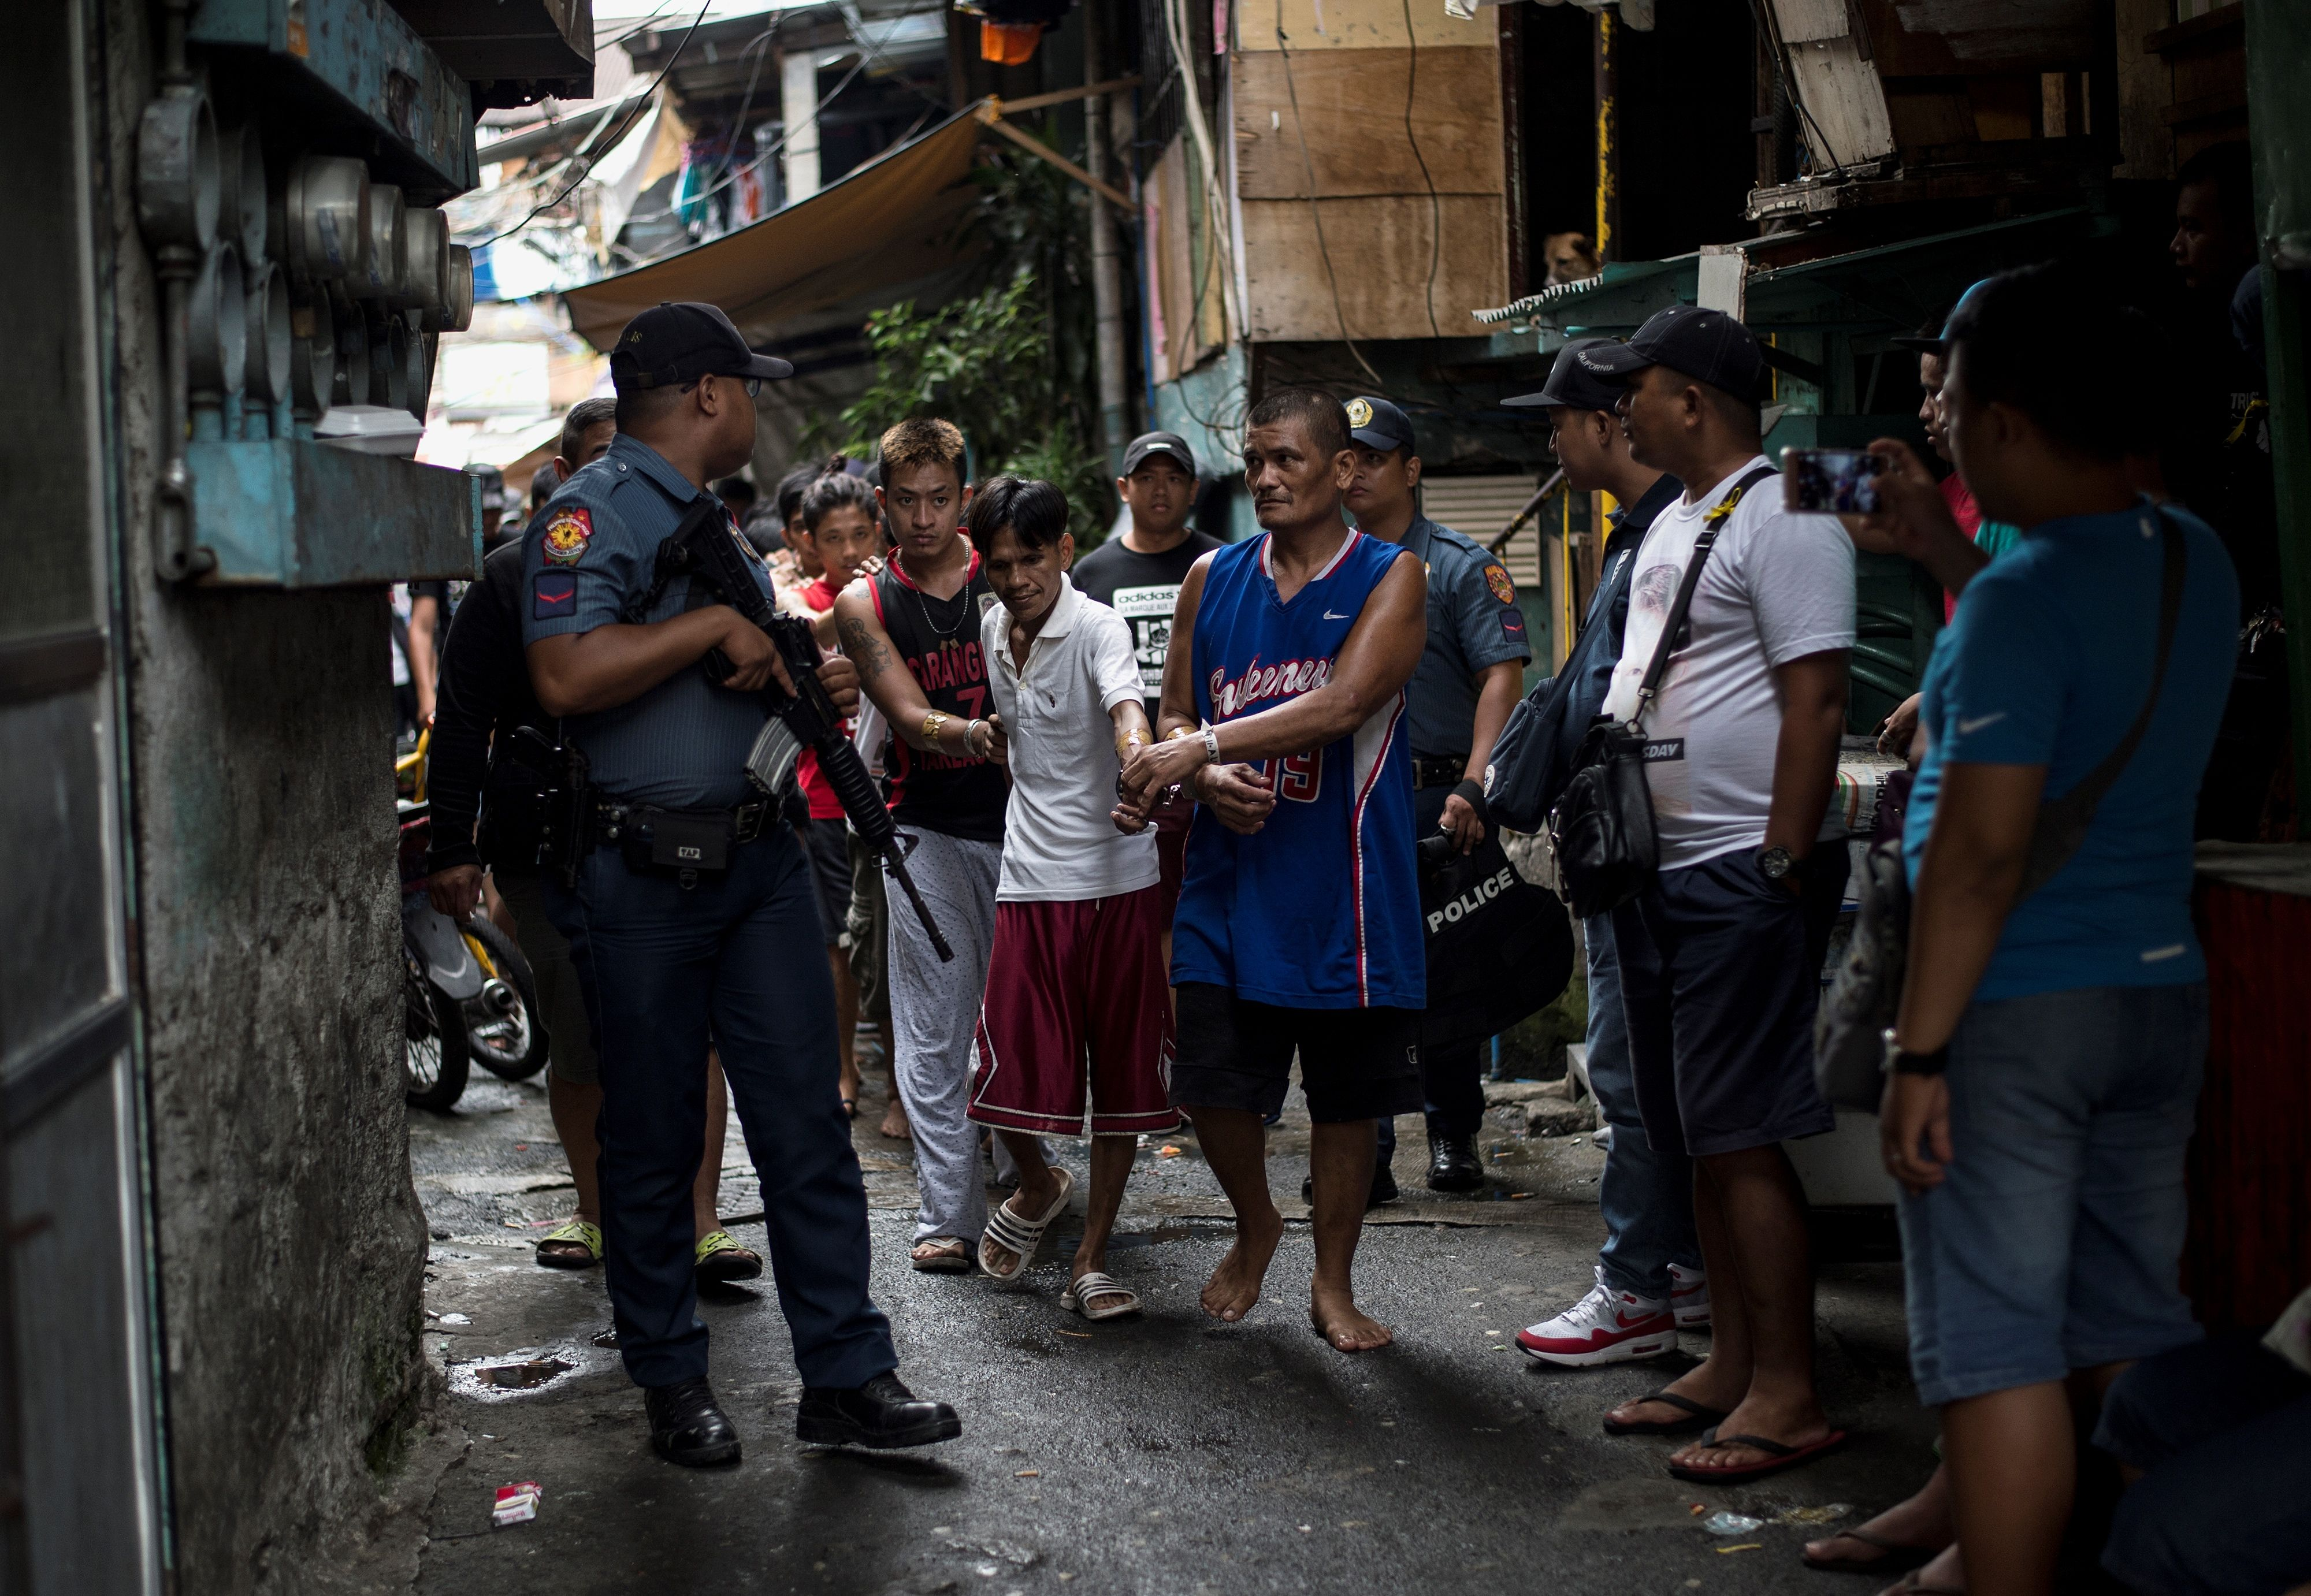 Male residents are rounded up for verification after police officers conducted a large scale anti-drug raid at a slum community in Manila on July 20, 2017.